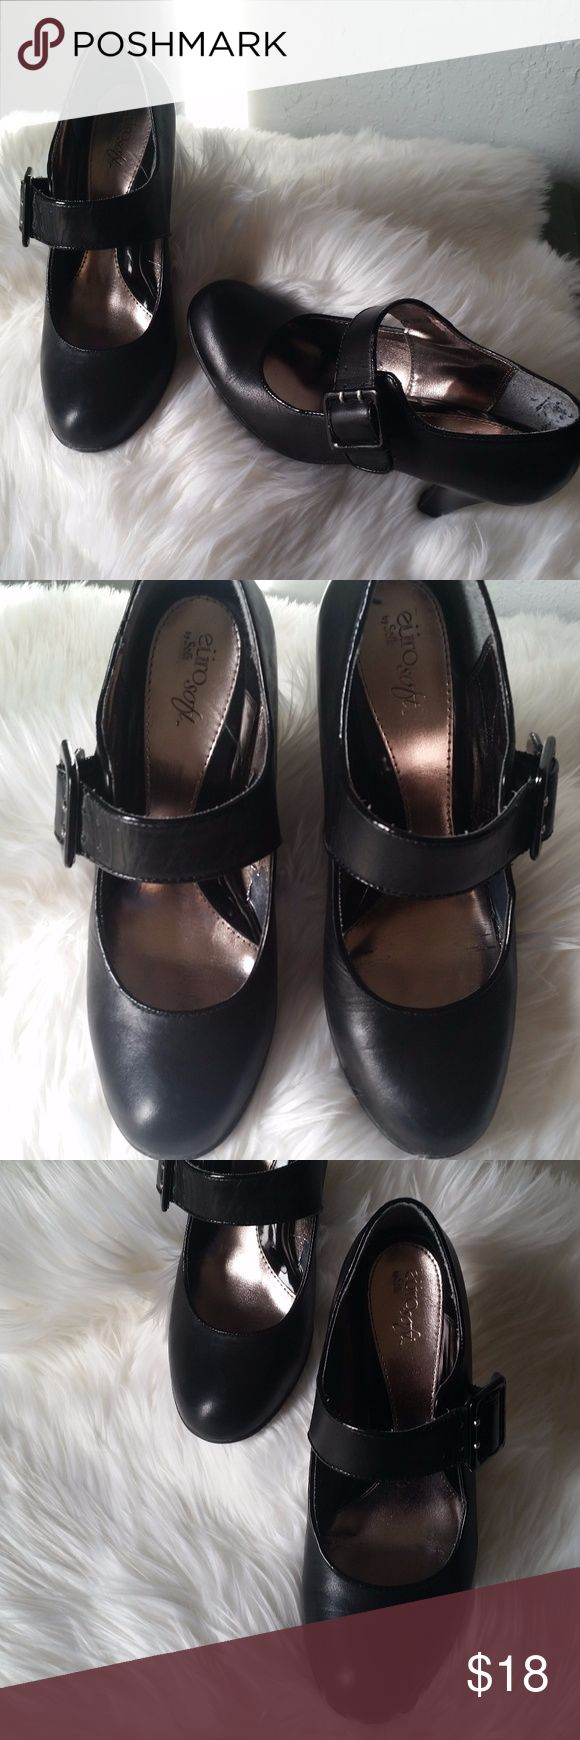 """Sofft Mary Jane's black leather heels Euro Soft by Sofft comfy comfy shoes. Black leather Mary Jane's size 9M 'Genna' style. Approx 3.25"""" heel. Worn a little on inside of shoe, but outside is great!! Sofft Shoes Heels"""